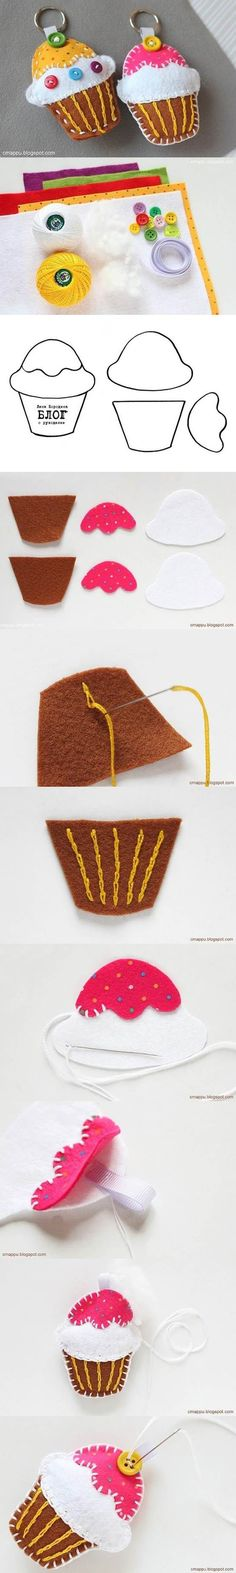 DIY Felt Cupcake Key Chain | iCreativeIdeas.com LIKE Us on Facebook == https://www.facebook.com/icreativeideas